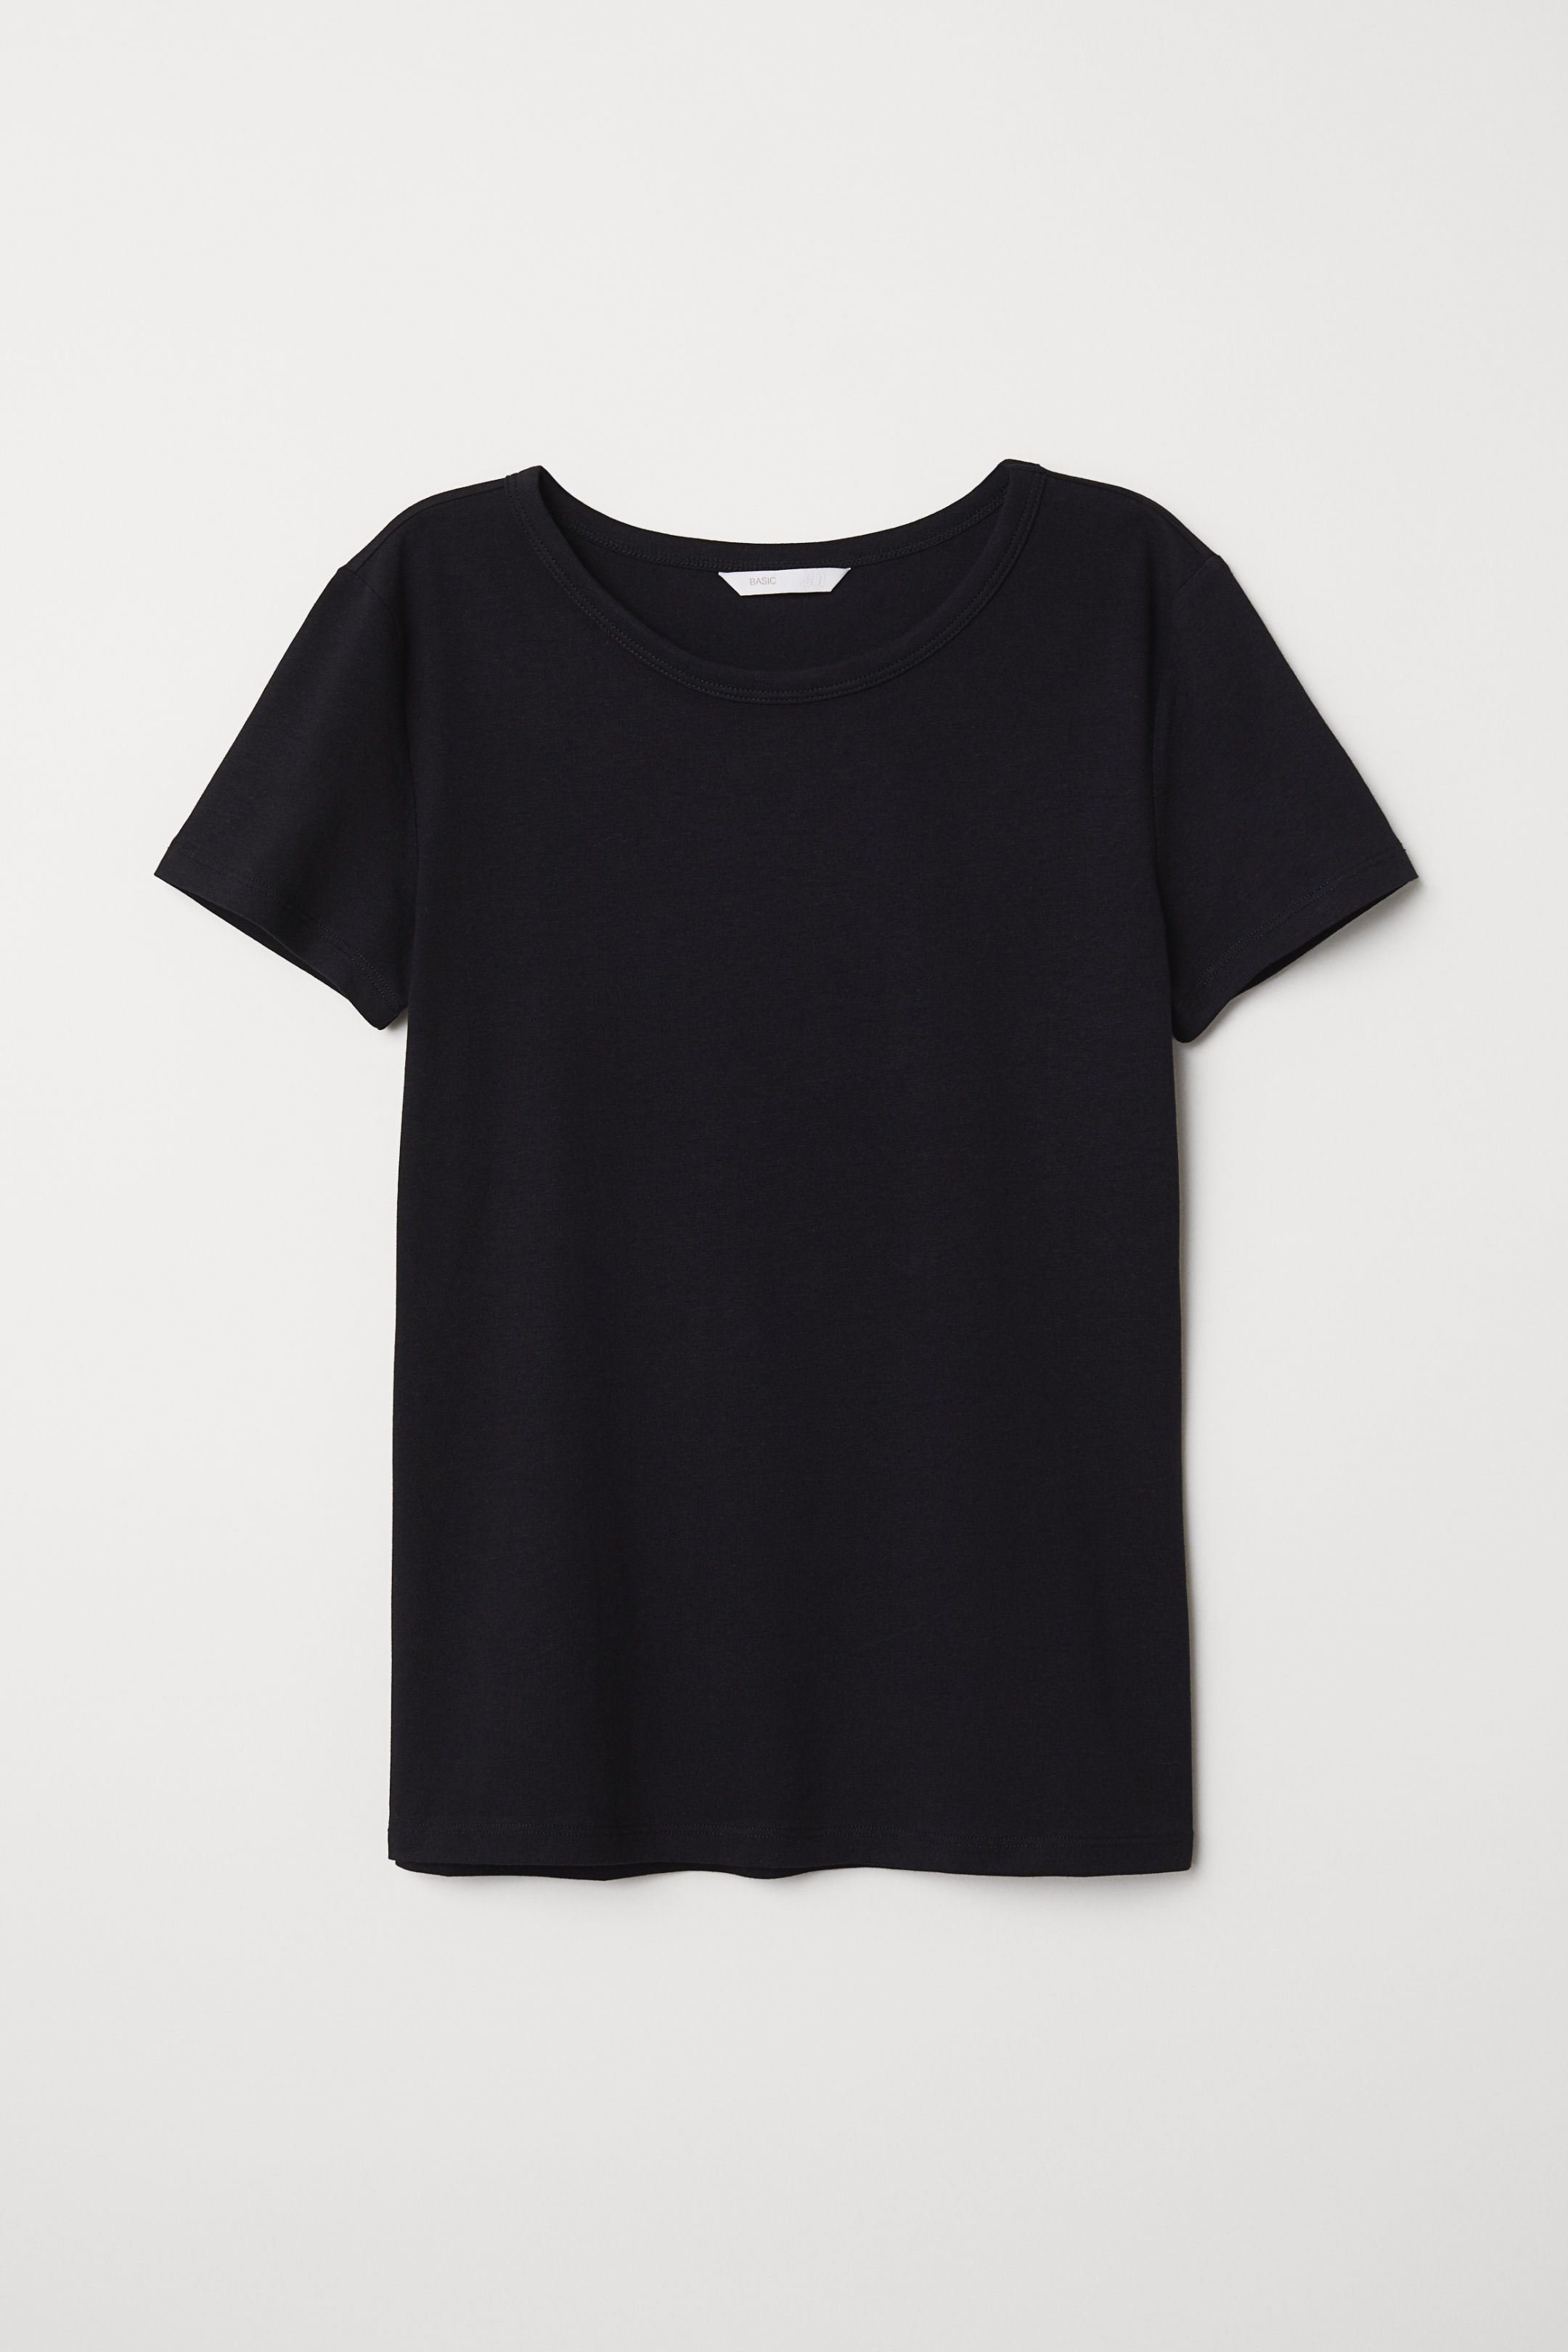 dda1626bd63c H&M T-shirt - Black in 2019 | wardrobe | Shirts, Mens black shirt ...